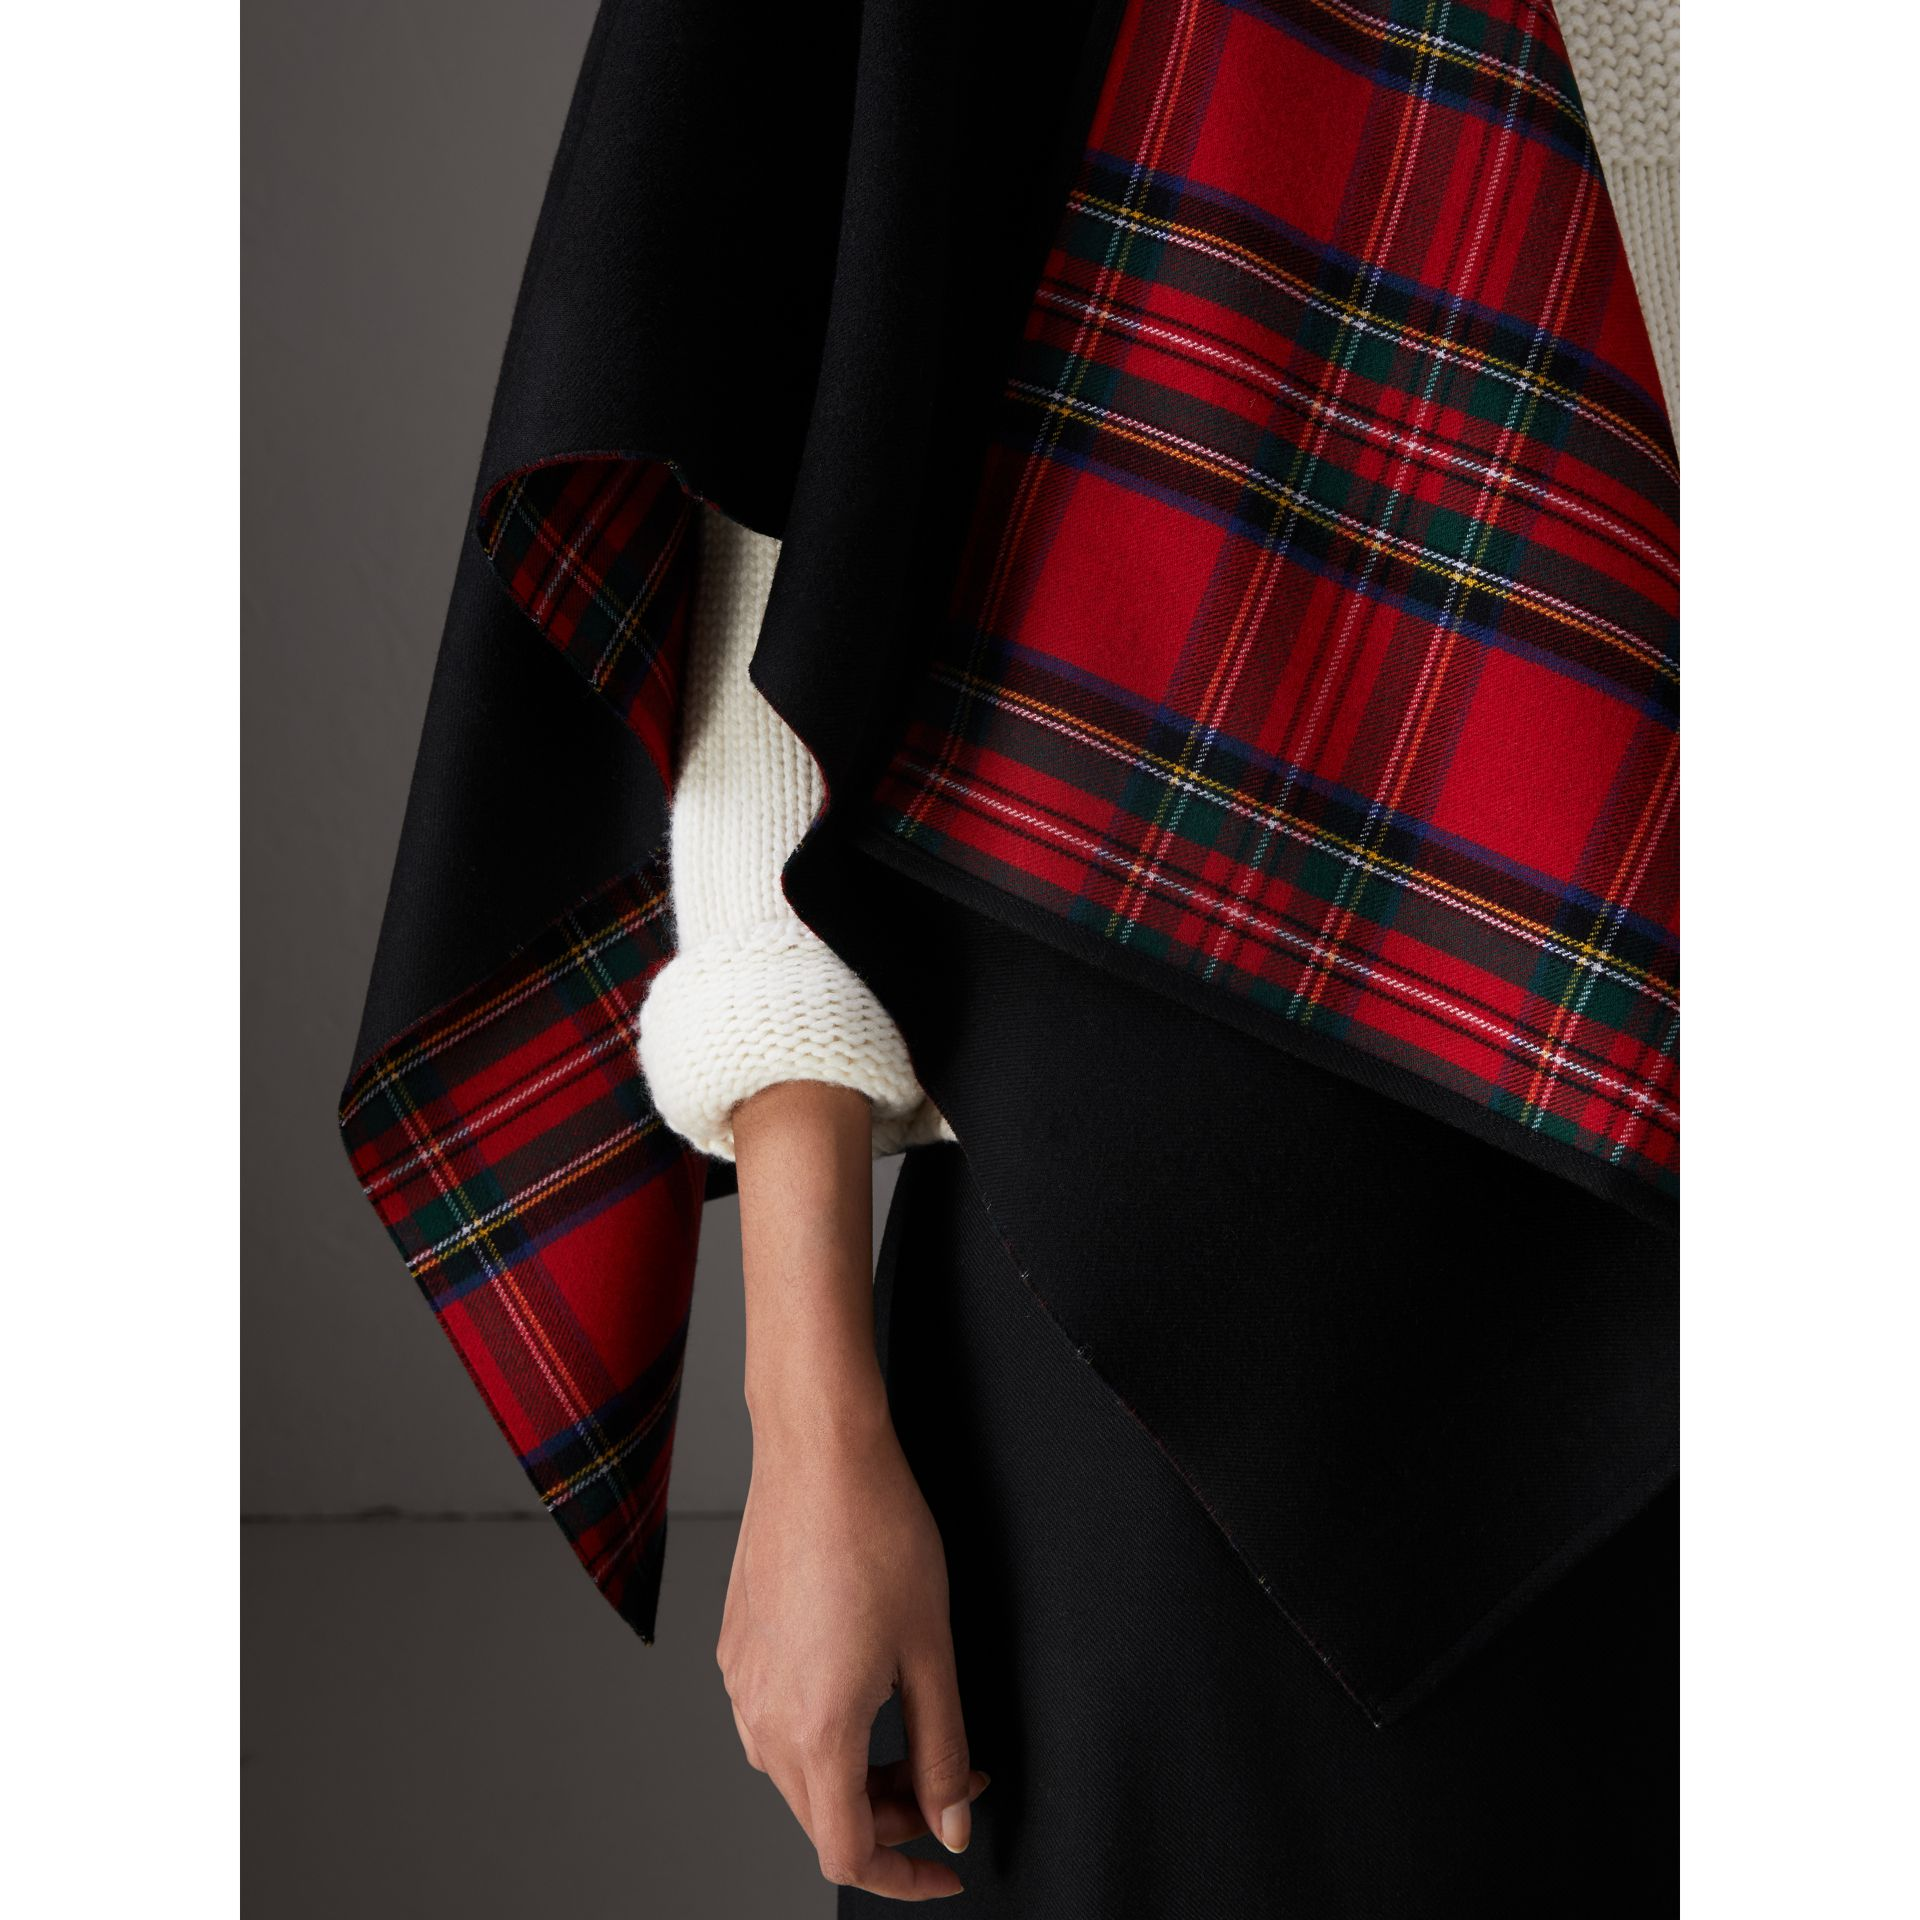 Poncho court réversible en laine tartan (Noir) | Burberry - photo de la galerie 1